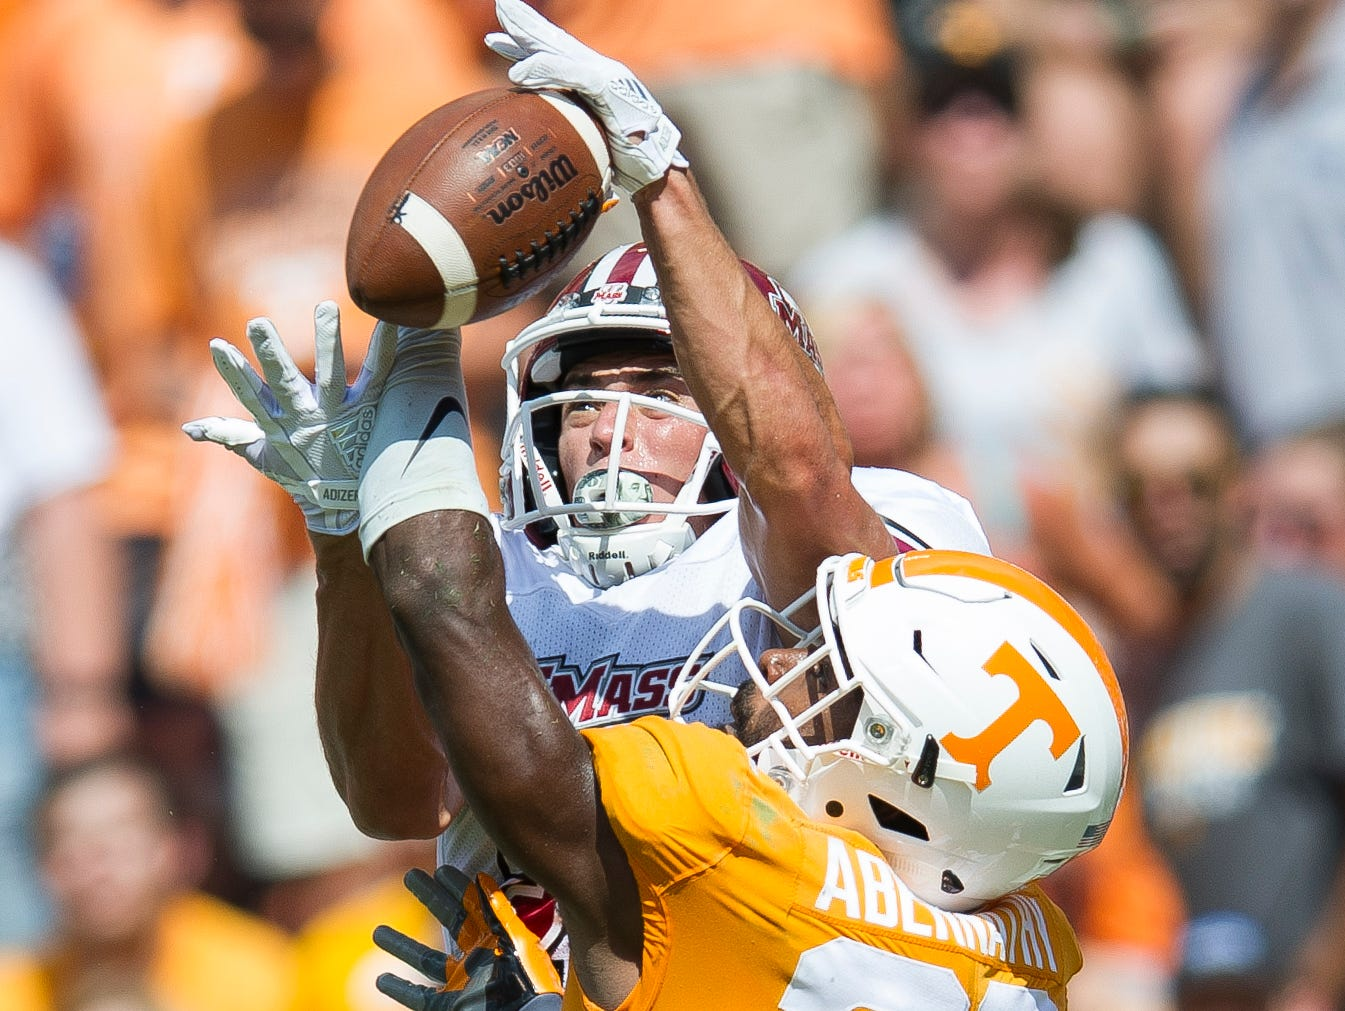 Tennessee defensive back Micah Abernathy (22) breaks up a pass intended for UMass wide receiver Andy Isabella (23) during Tennessee's game against UMass in Neyland Stadium on Saturday, Sept. 23, 2017.